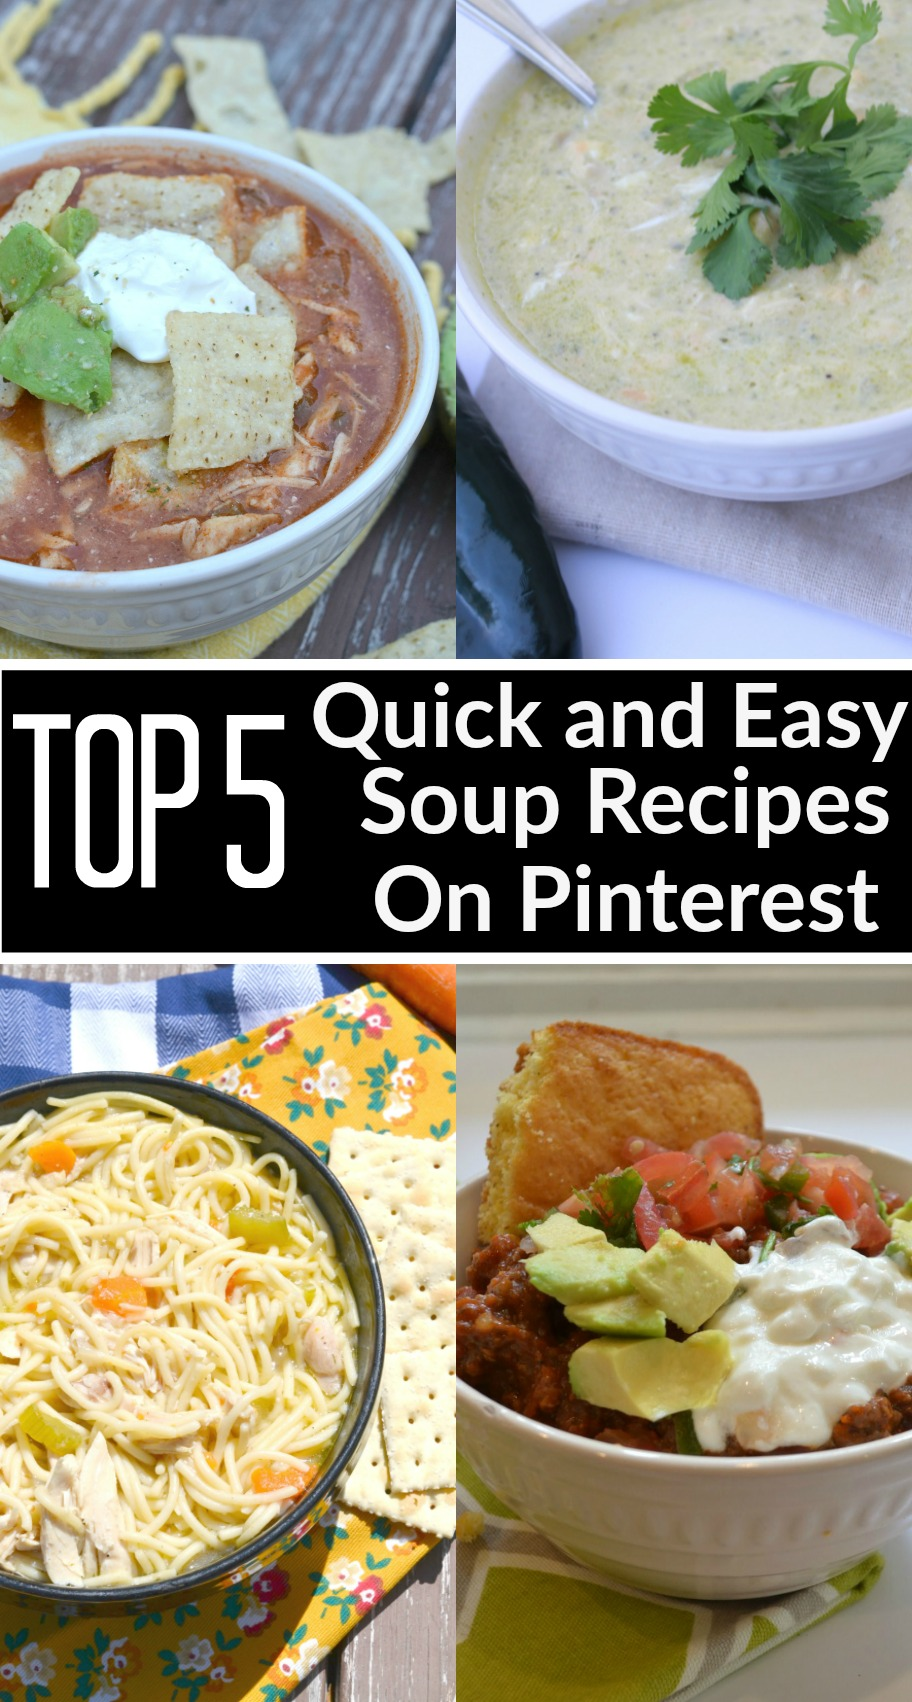 Top 5 Quick and Easy Soup Recipes on Pinterest